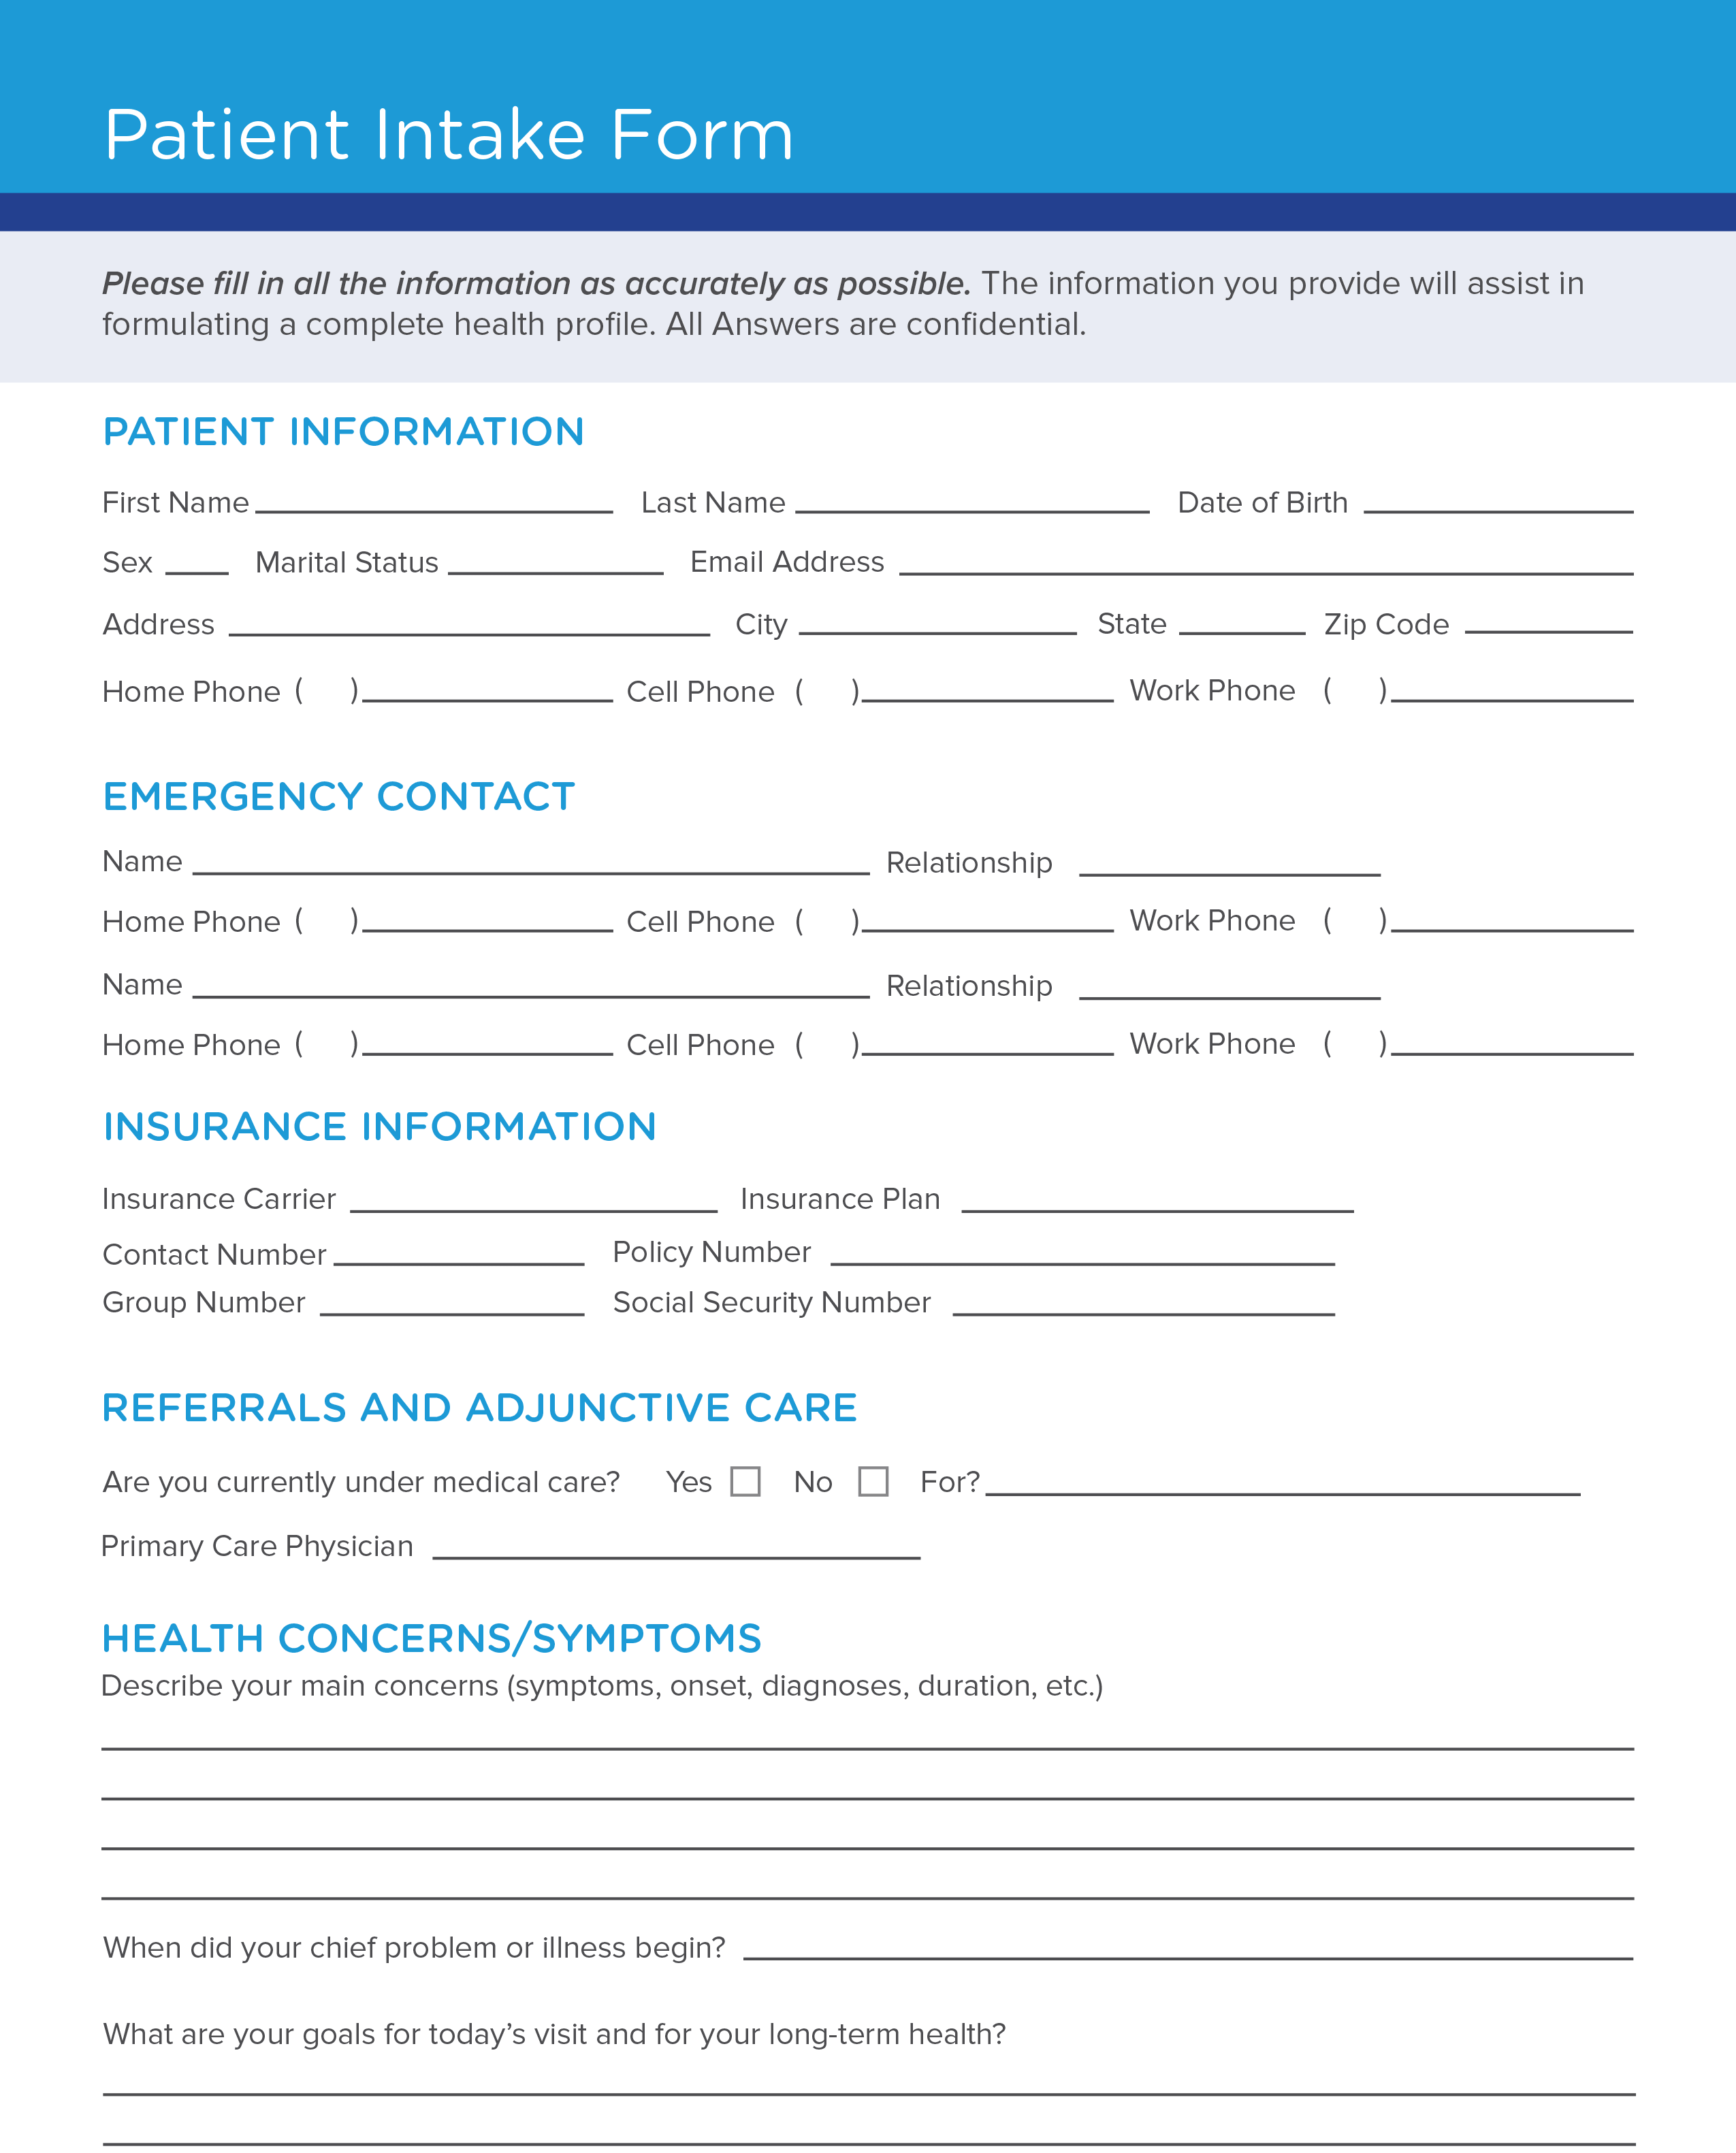 Free Patient Intake Form Template Carecloud Continuum